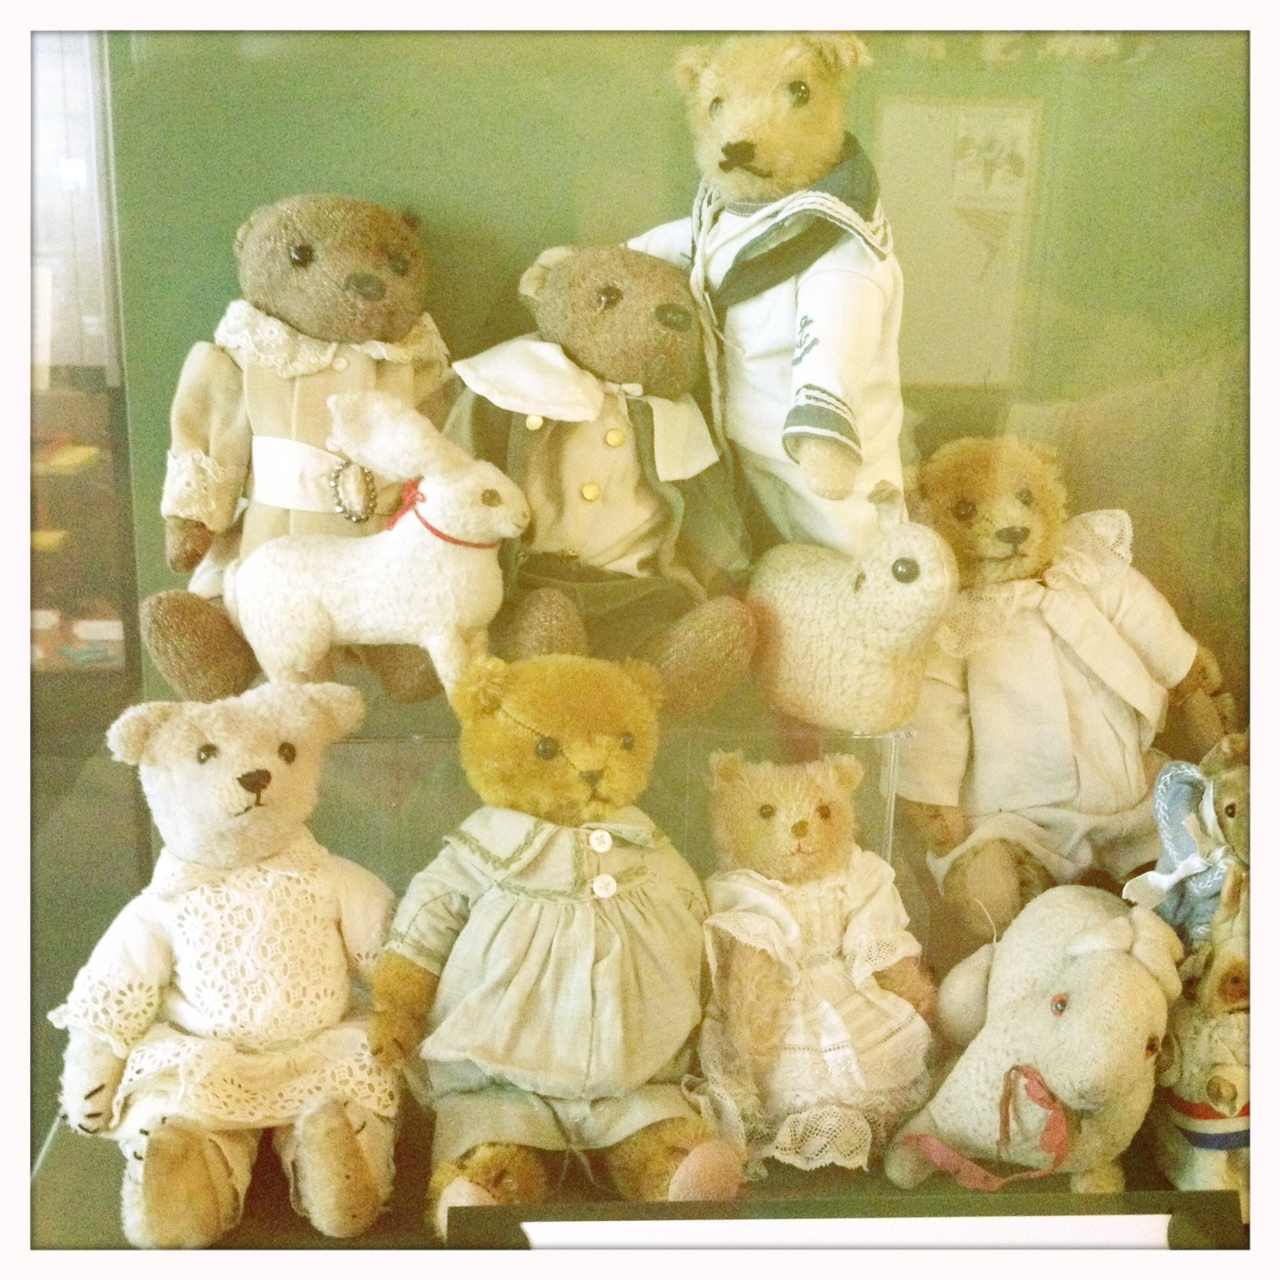 A 'hug of bears' from the Museum of Childhood. Very sweet!